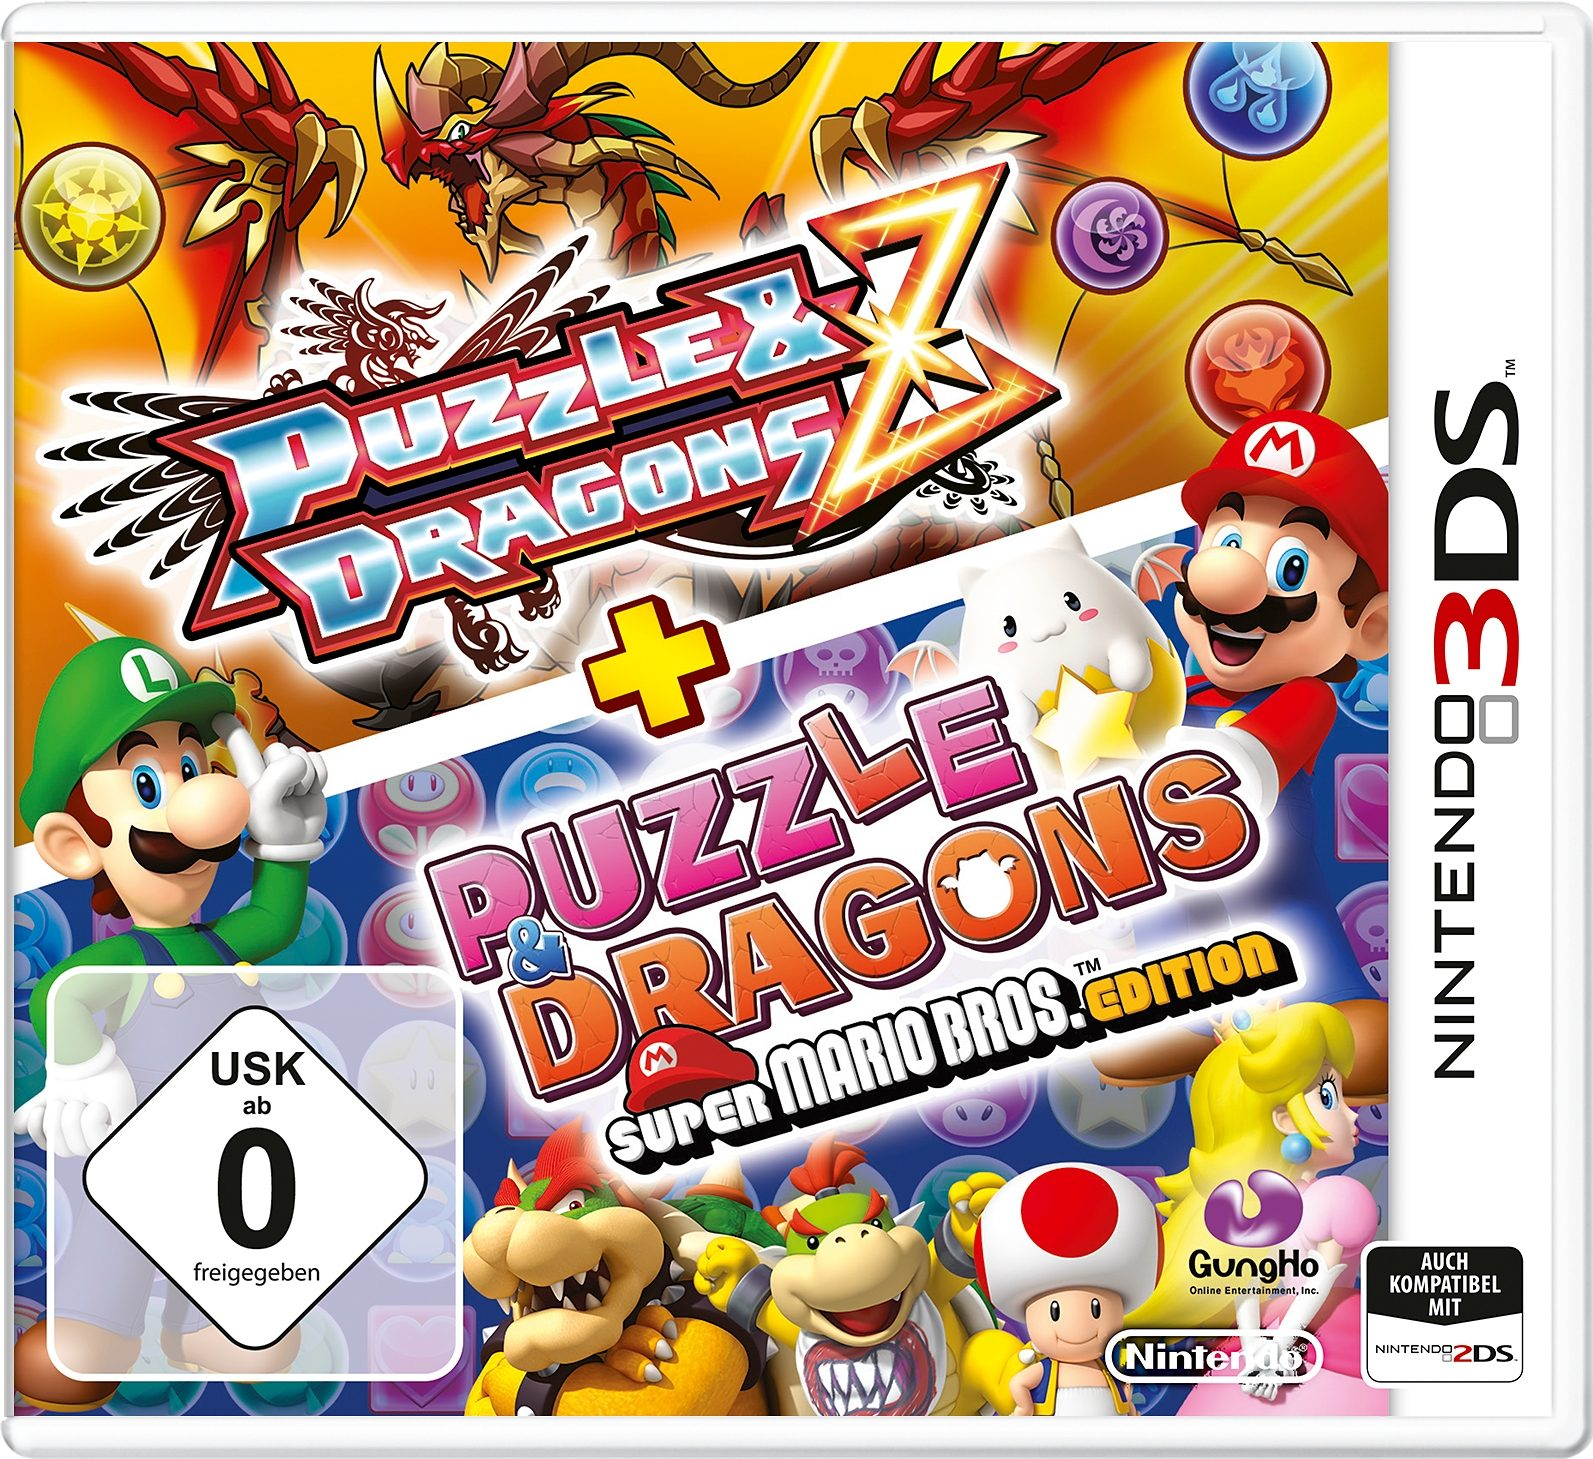 Puzzle & Dragons Z + Puzzle & Dragons: Super Mario Bros. Edt. New Nintendo 3DS